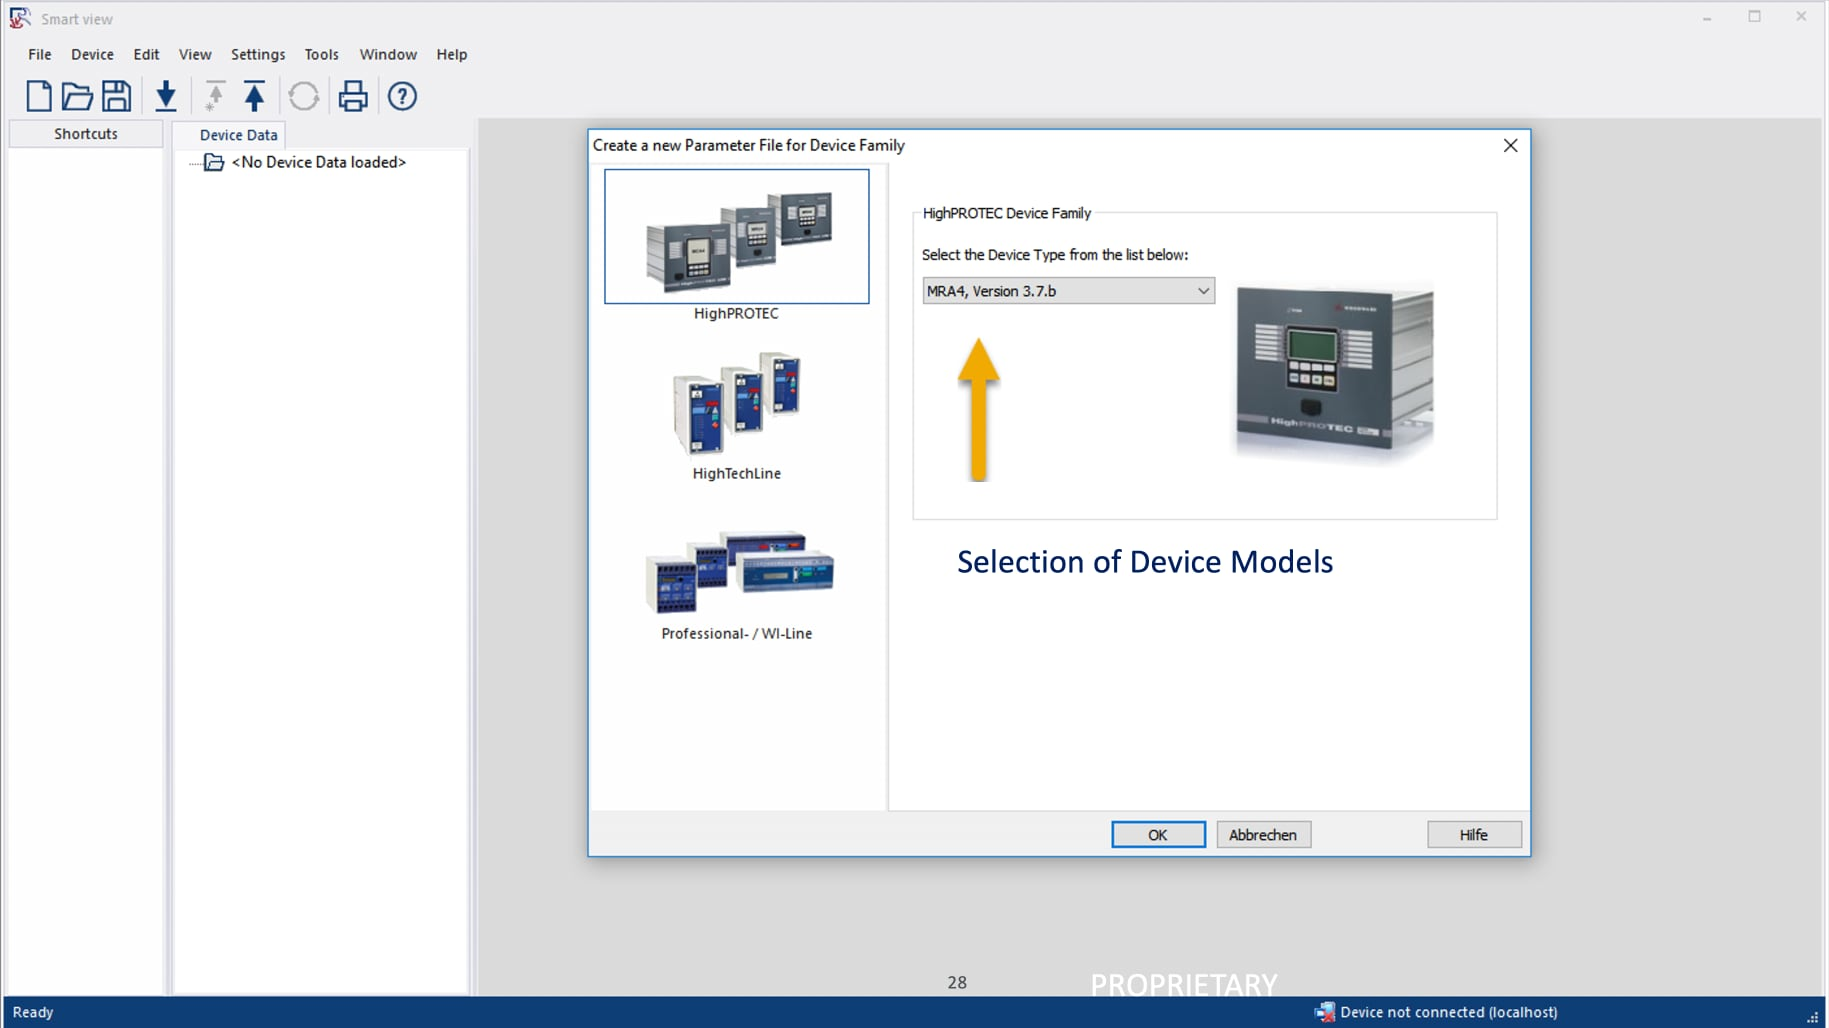 Smartview, Smart view, Smart view 4.8, Woodward, SEG, HighPROTEC, Protection Relay